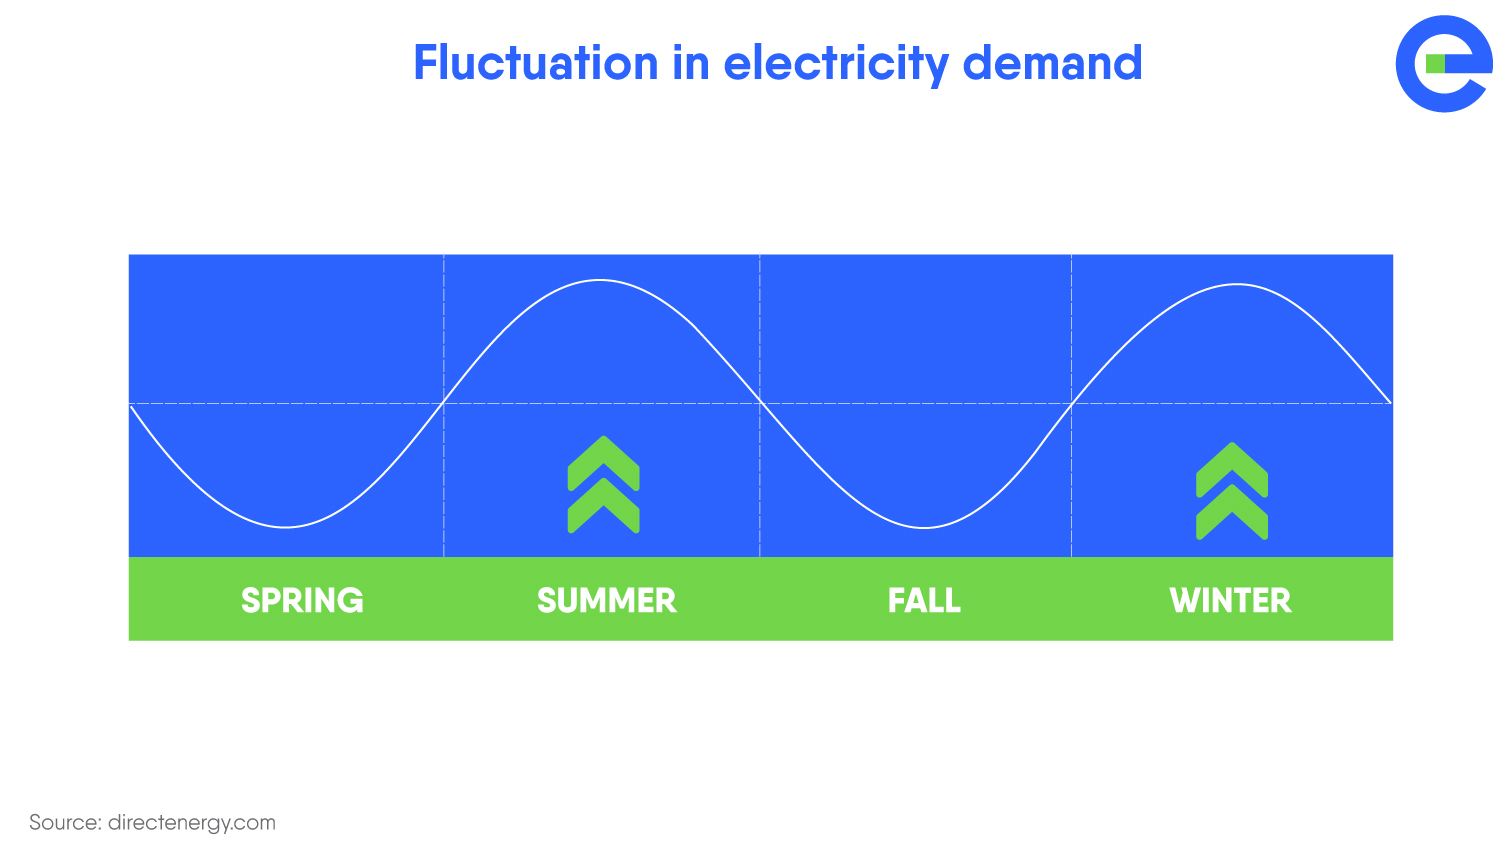 Storage Report 2020 - Fluctuation in electricity demand